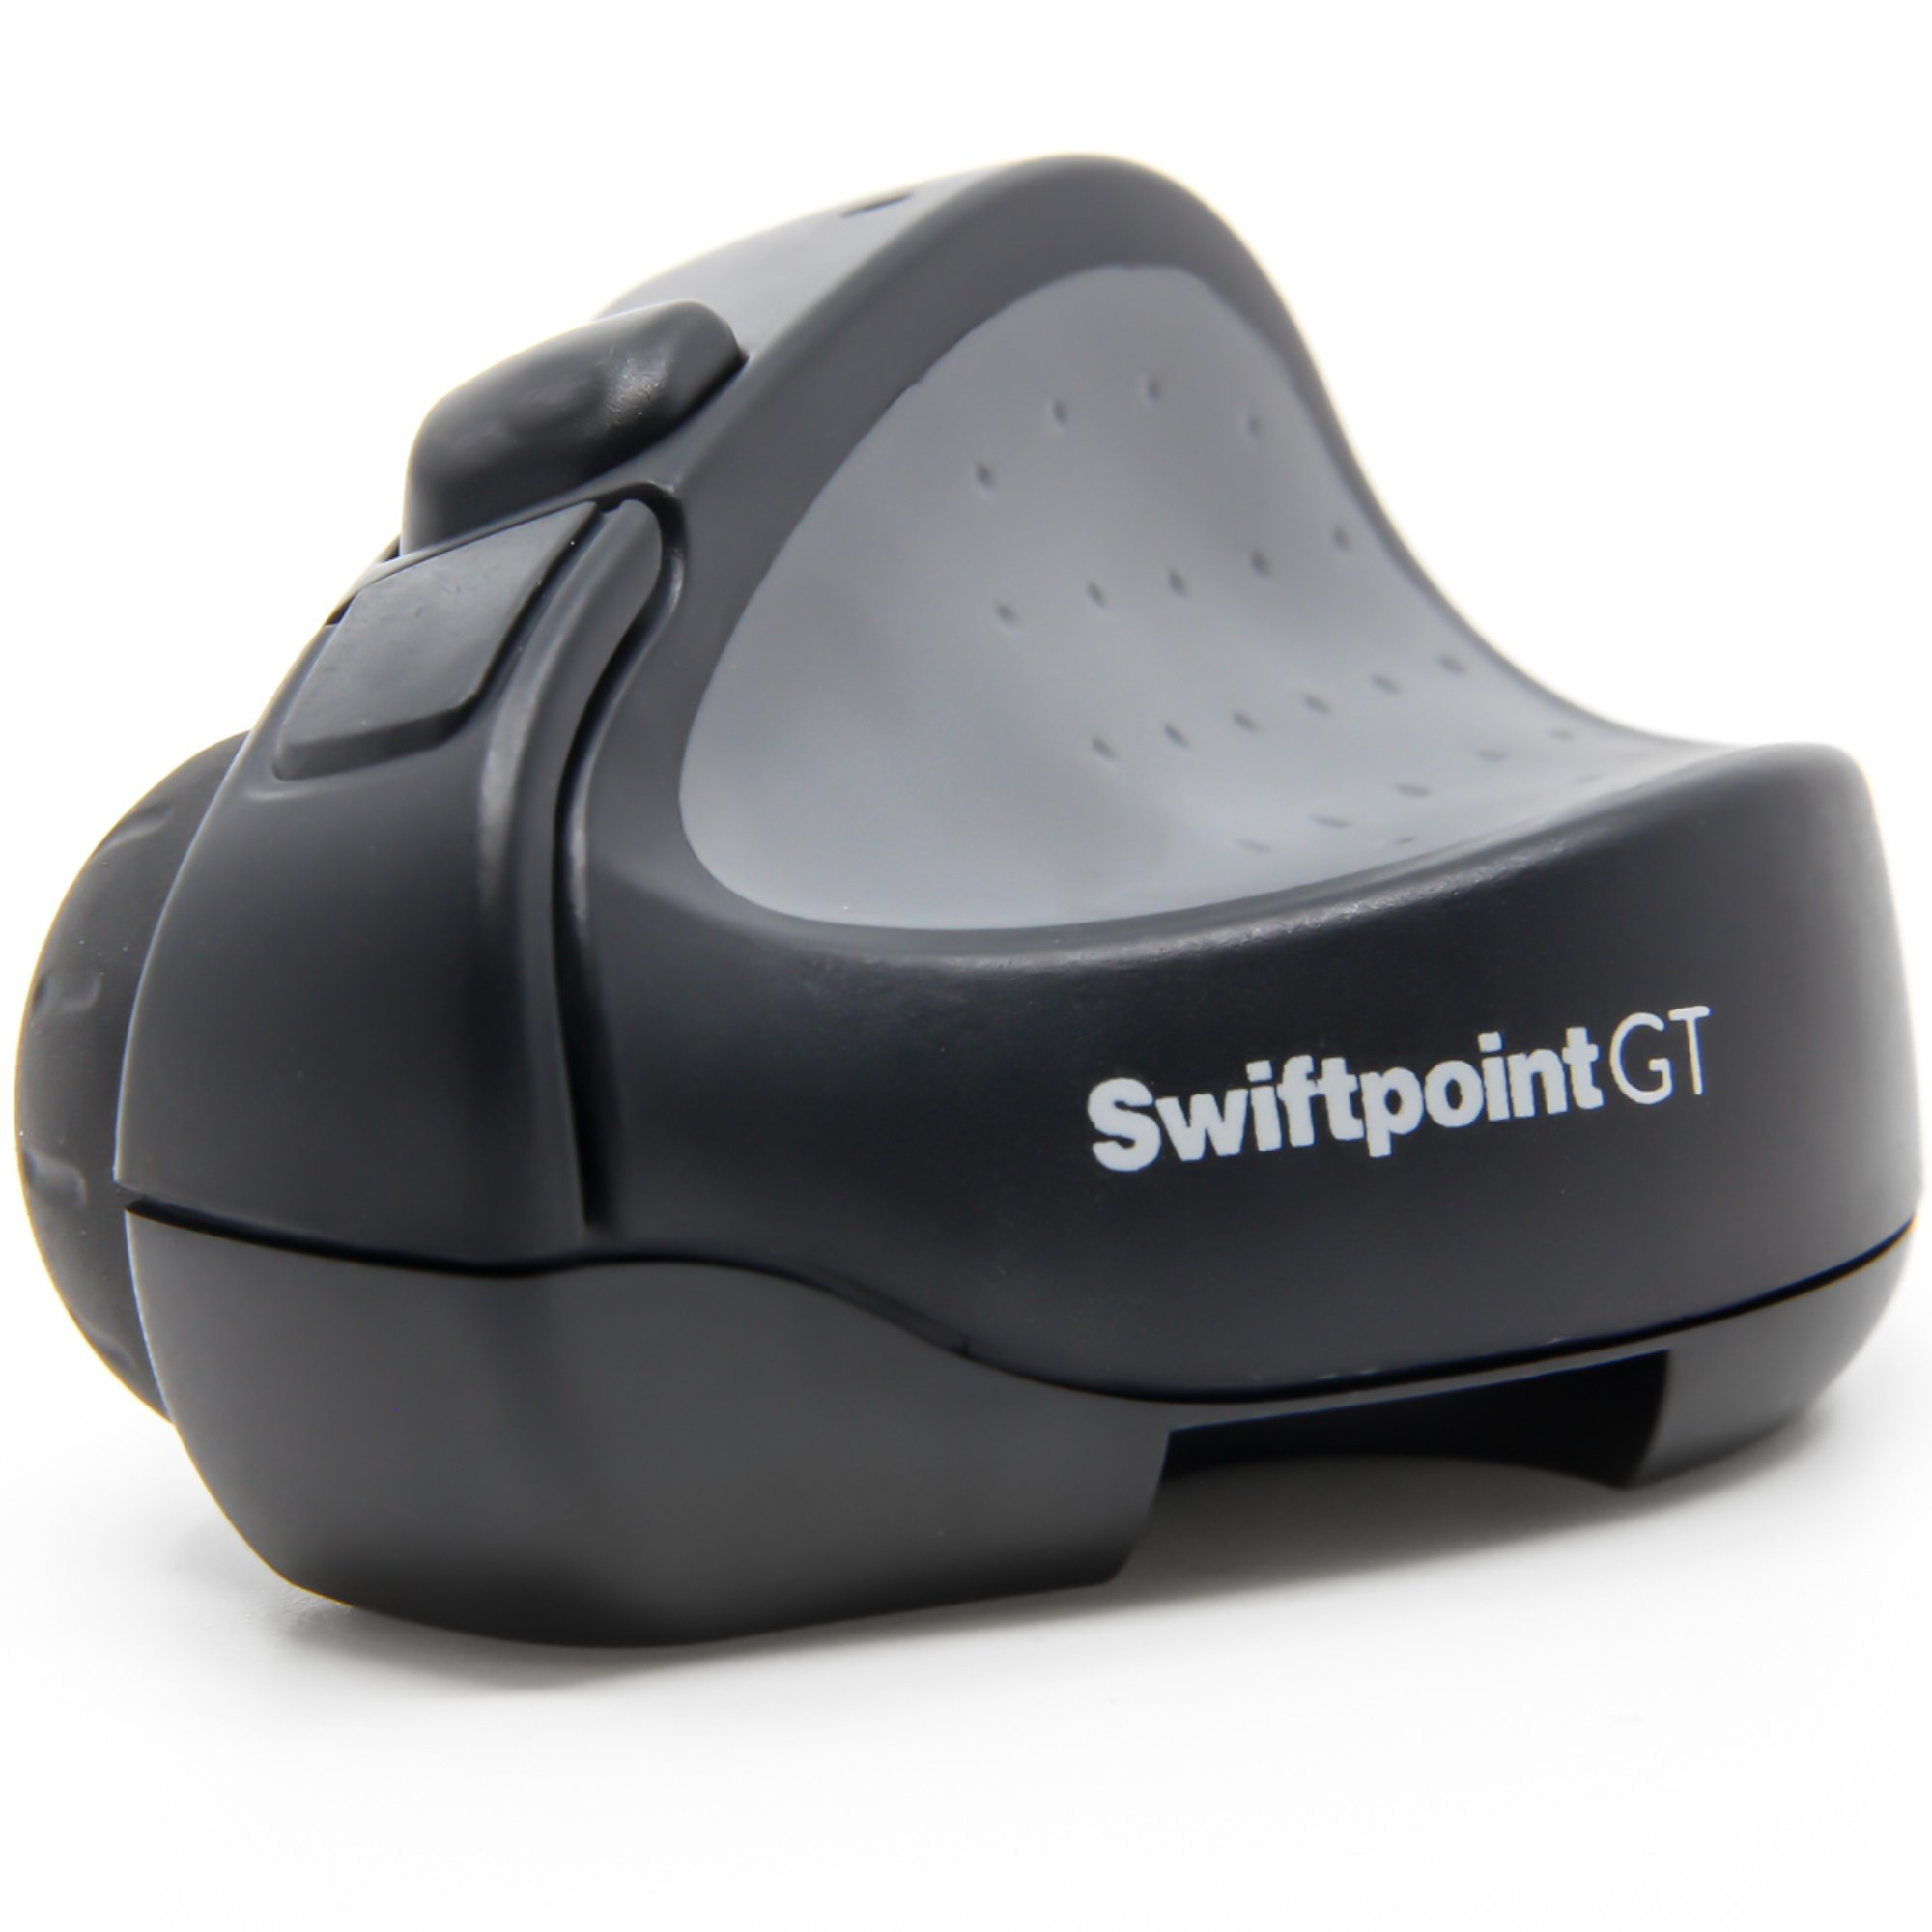 Swiftpoint GT Wireless Ergonomic Mobile Mouse with Truly Natural Touch Gestures